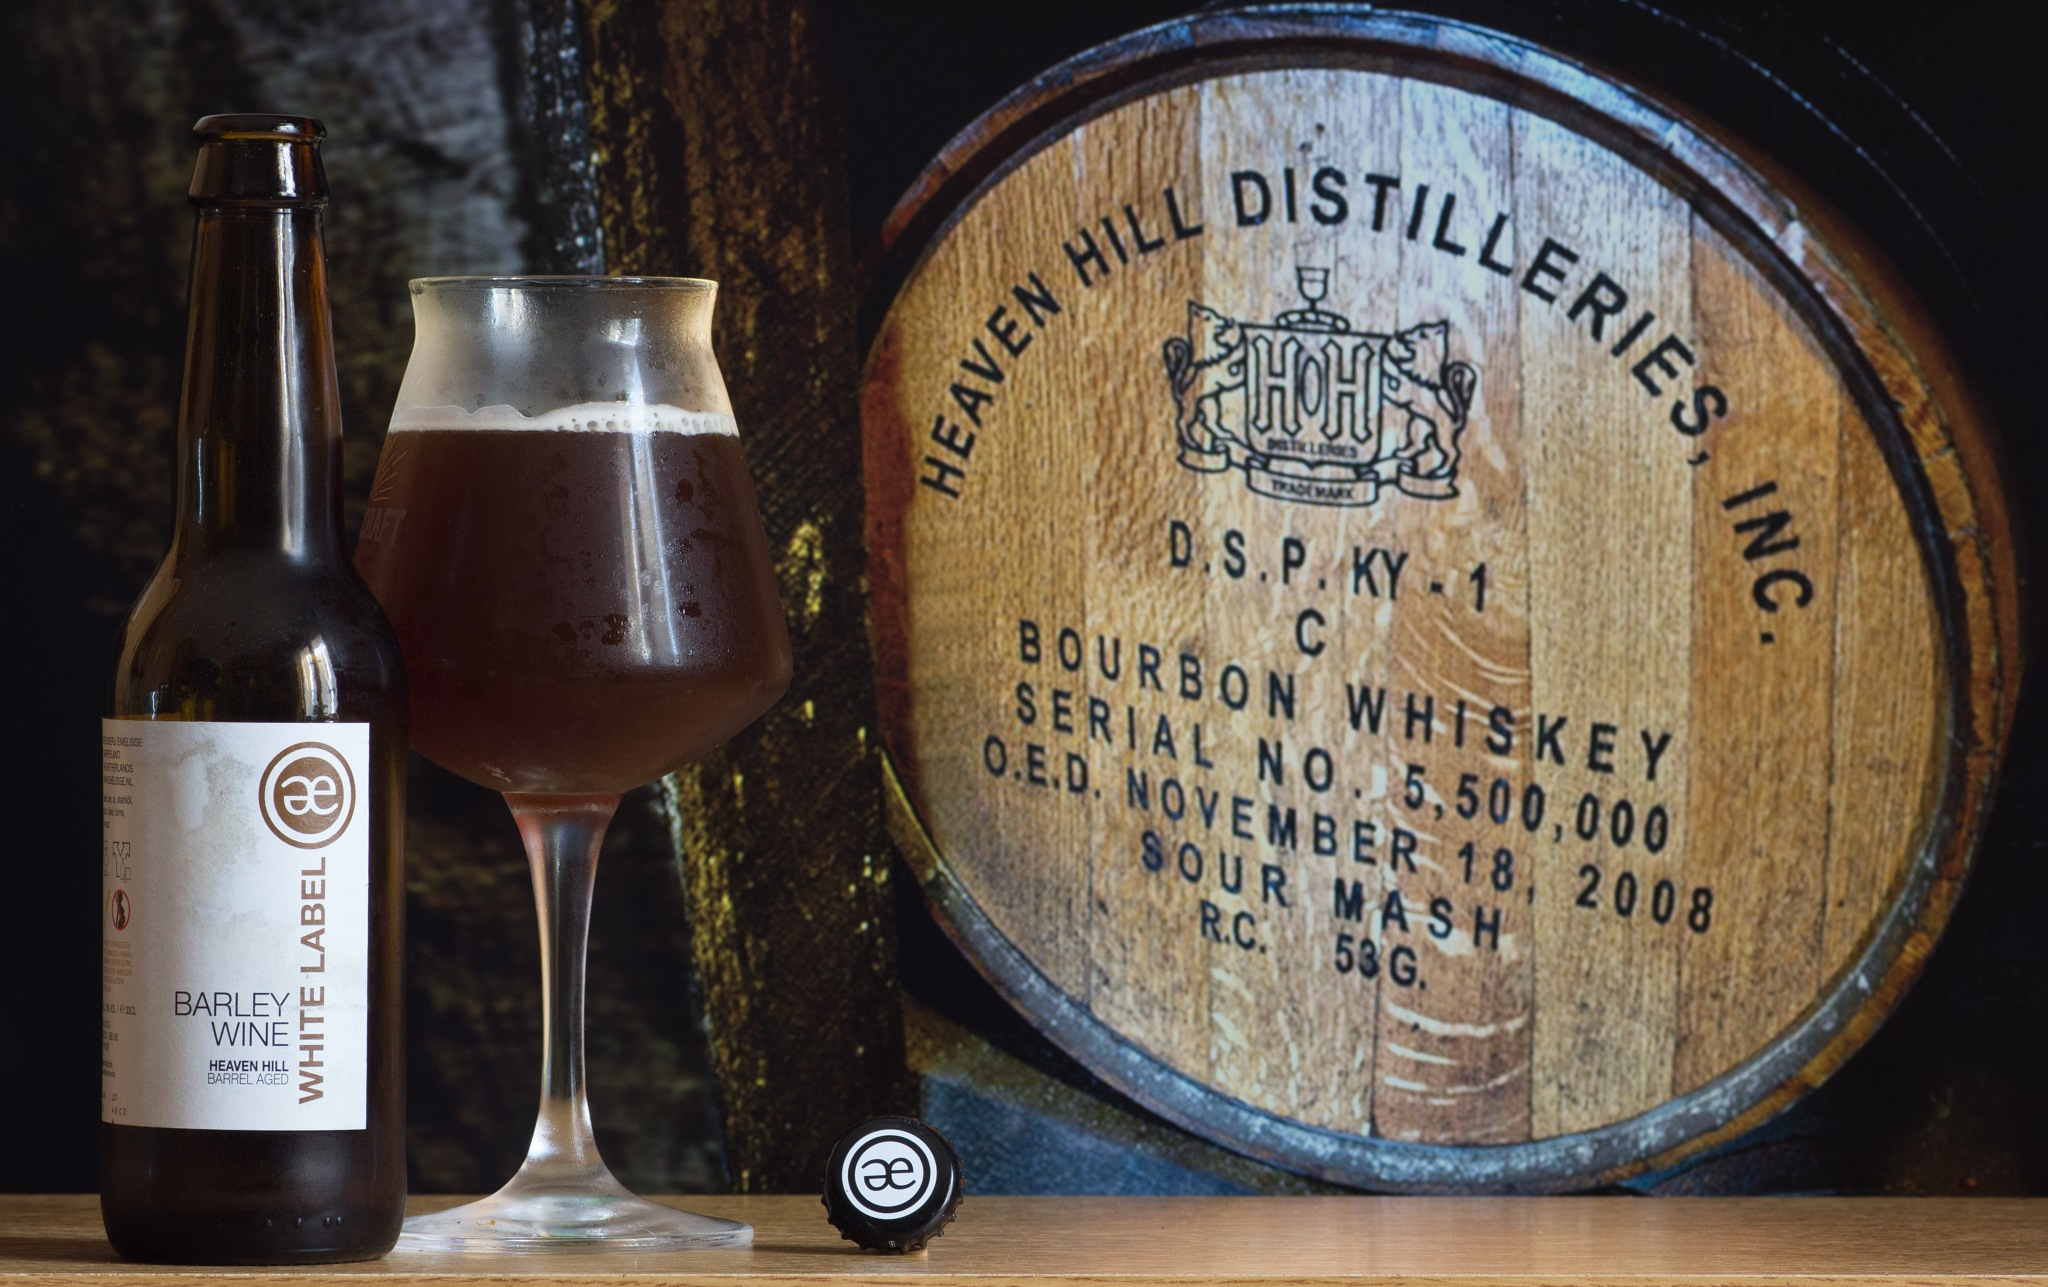 White Label Heaven Hill Barrel Age by Franck Rouanet